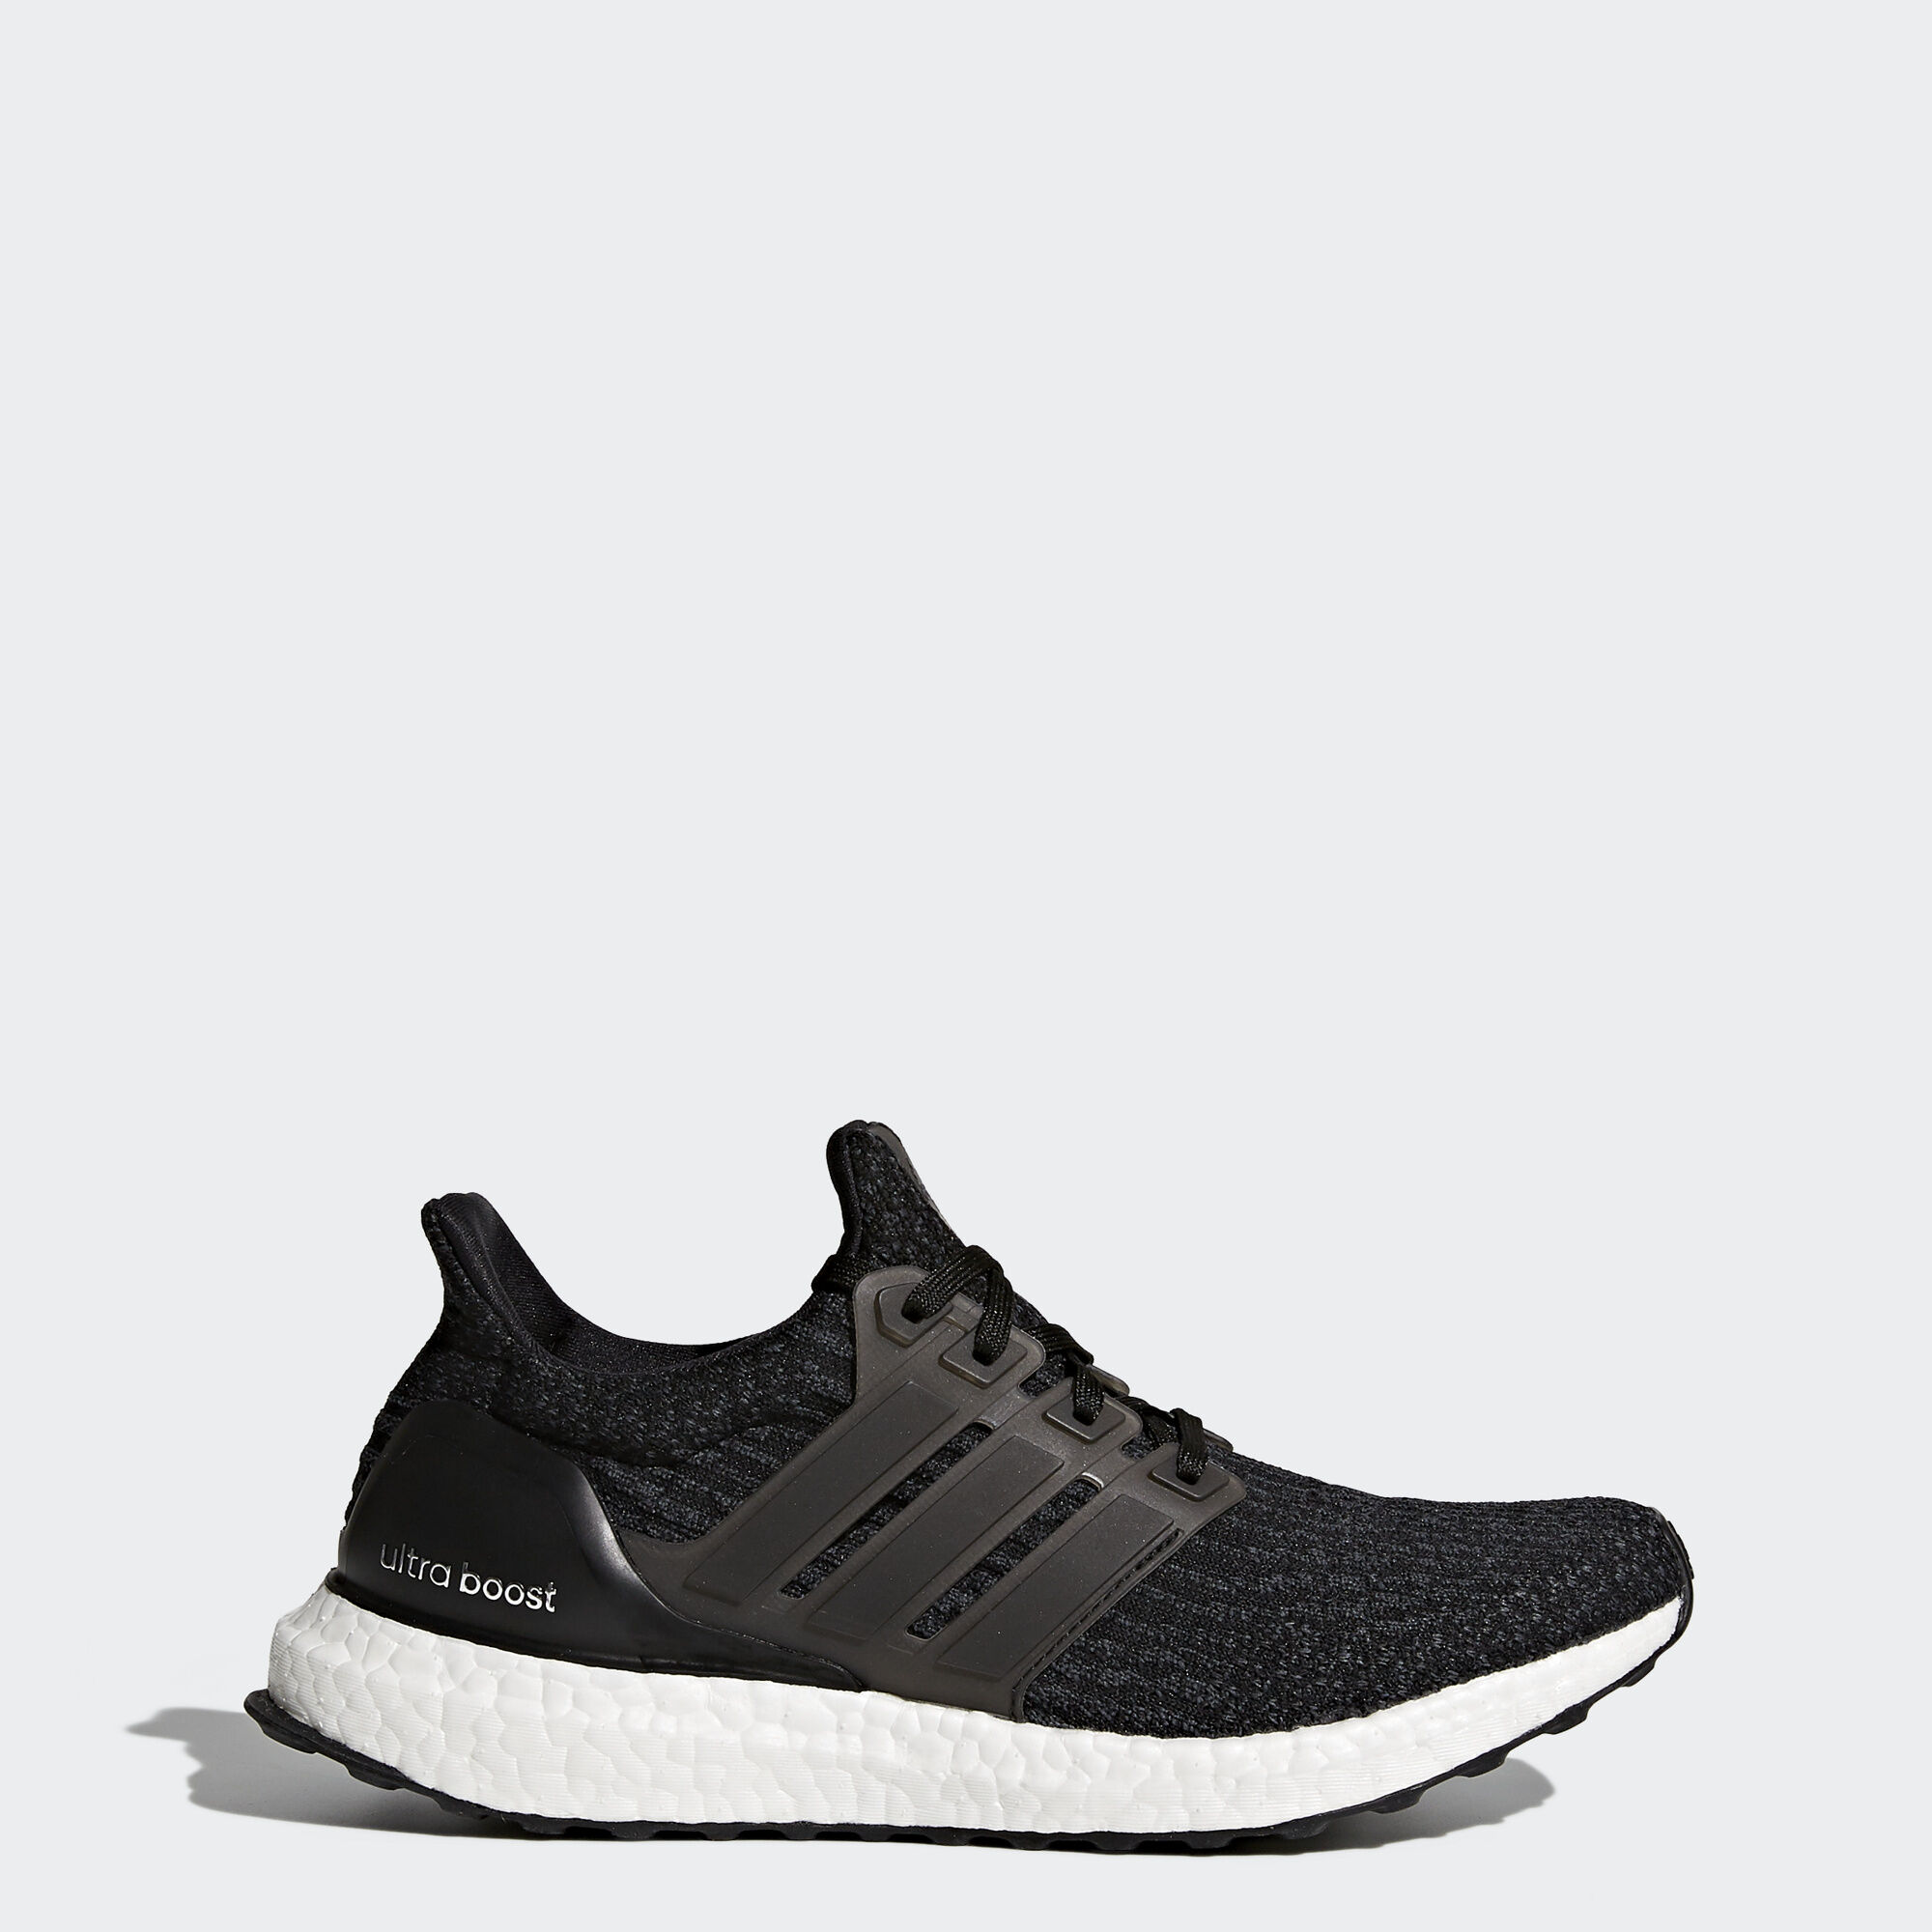 Adidas Ultra Boost Black Women